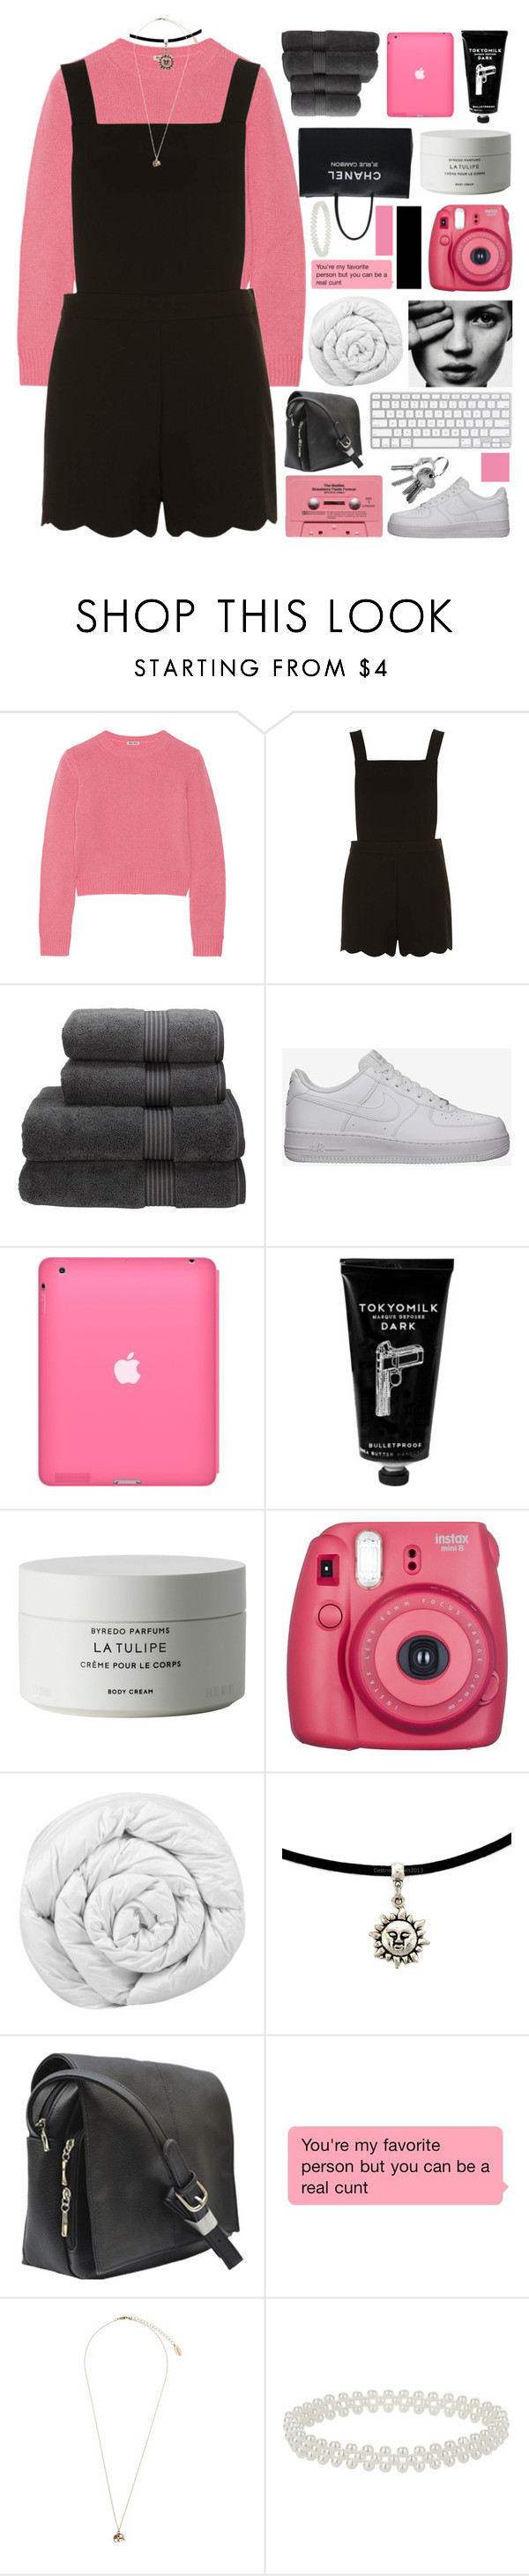 """""""right my wrongs"""" by d-isappear ❤ liked on Polyvore featuring Miu Miu, Dorothy Perkins, Christy, NIKE, TokyoMilk, Byredo, Chanel, Brinkhaus, CASSETTE and Retrò"""